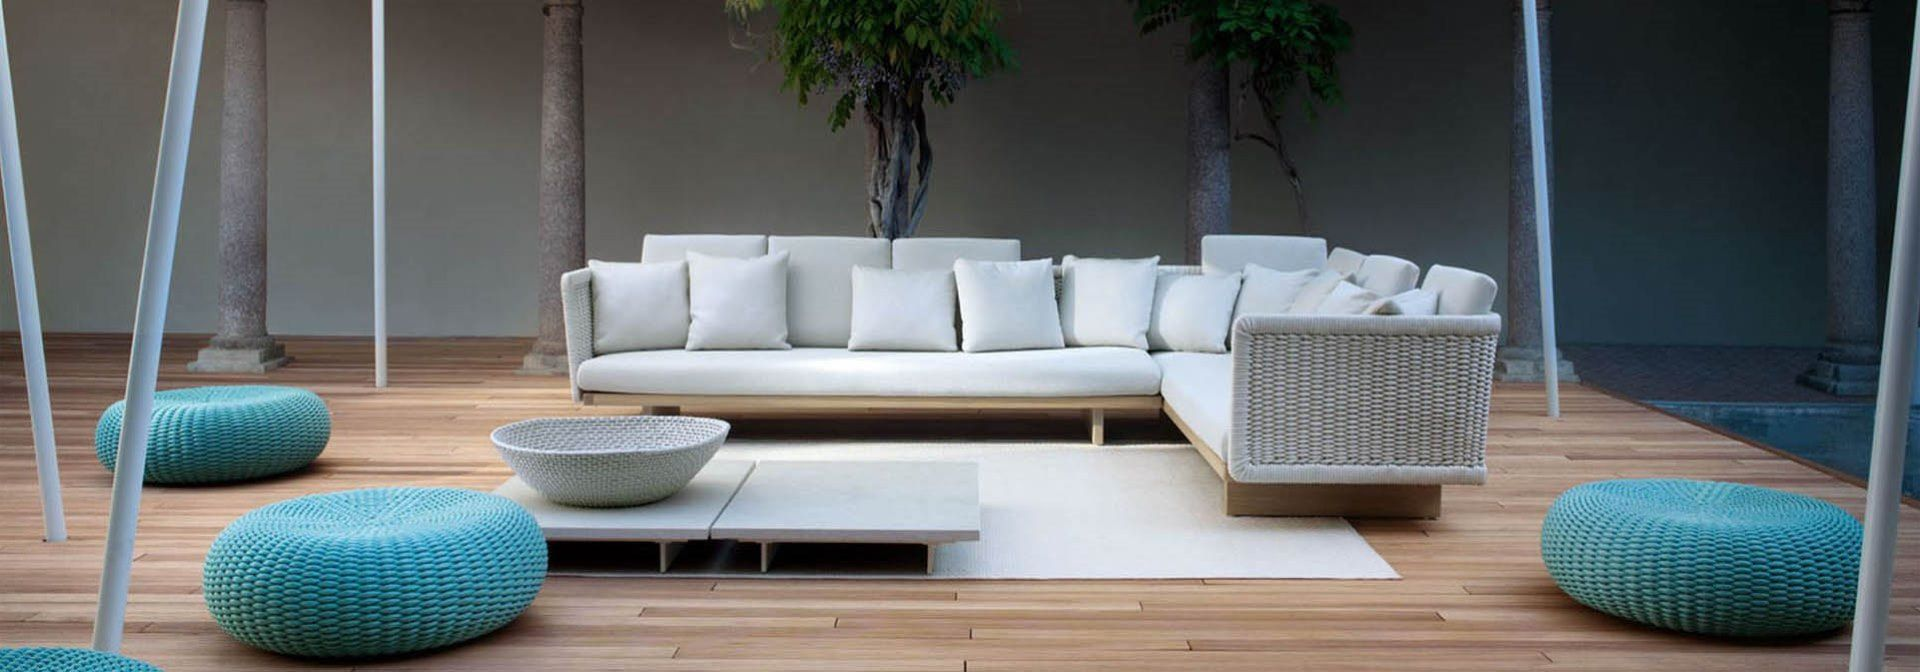 Interni online | out doors furniture & living | Pinterest | Door ...